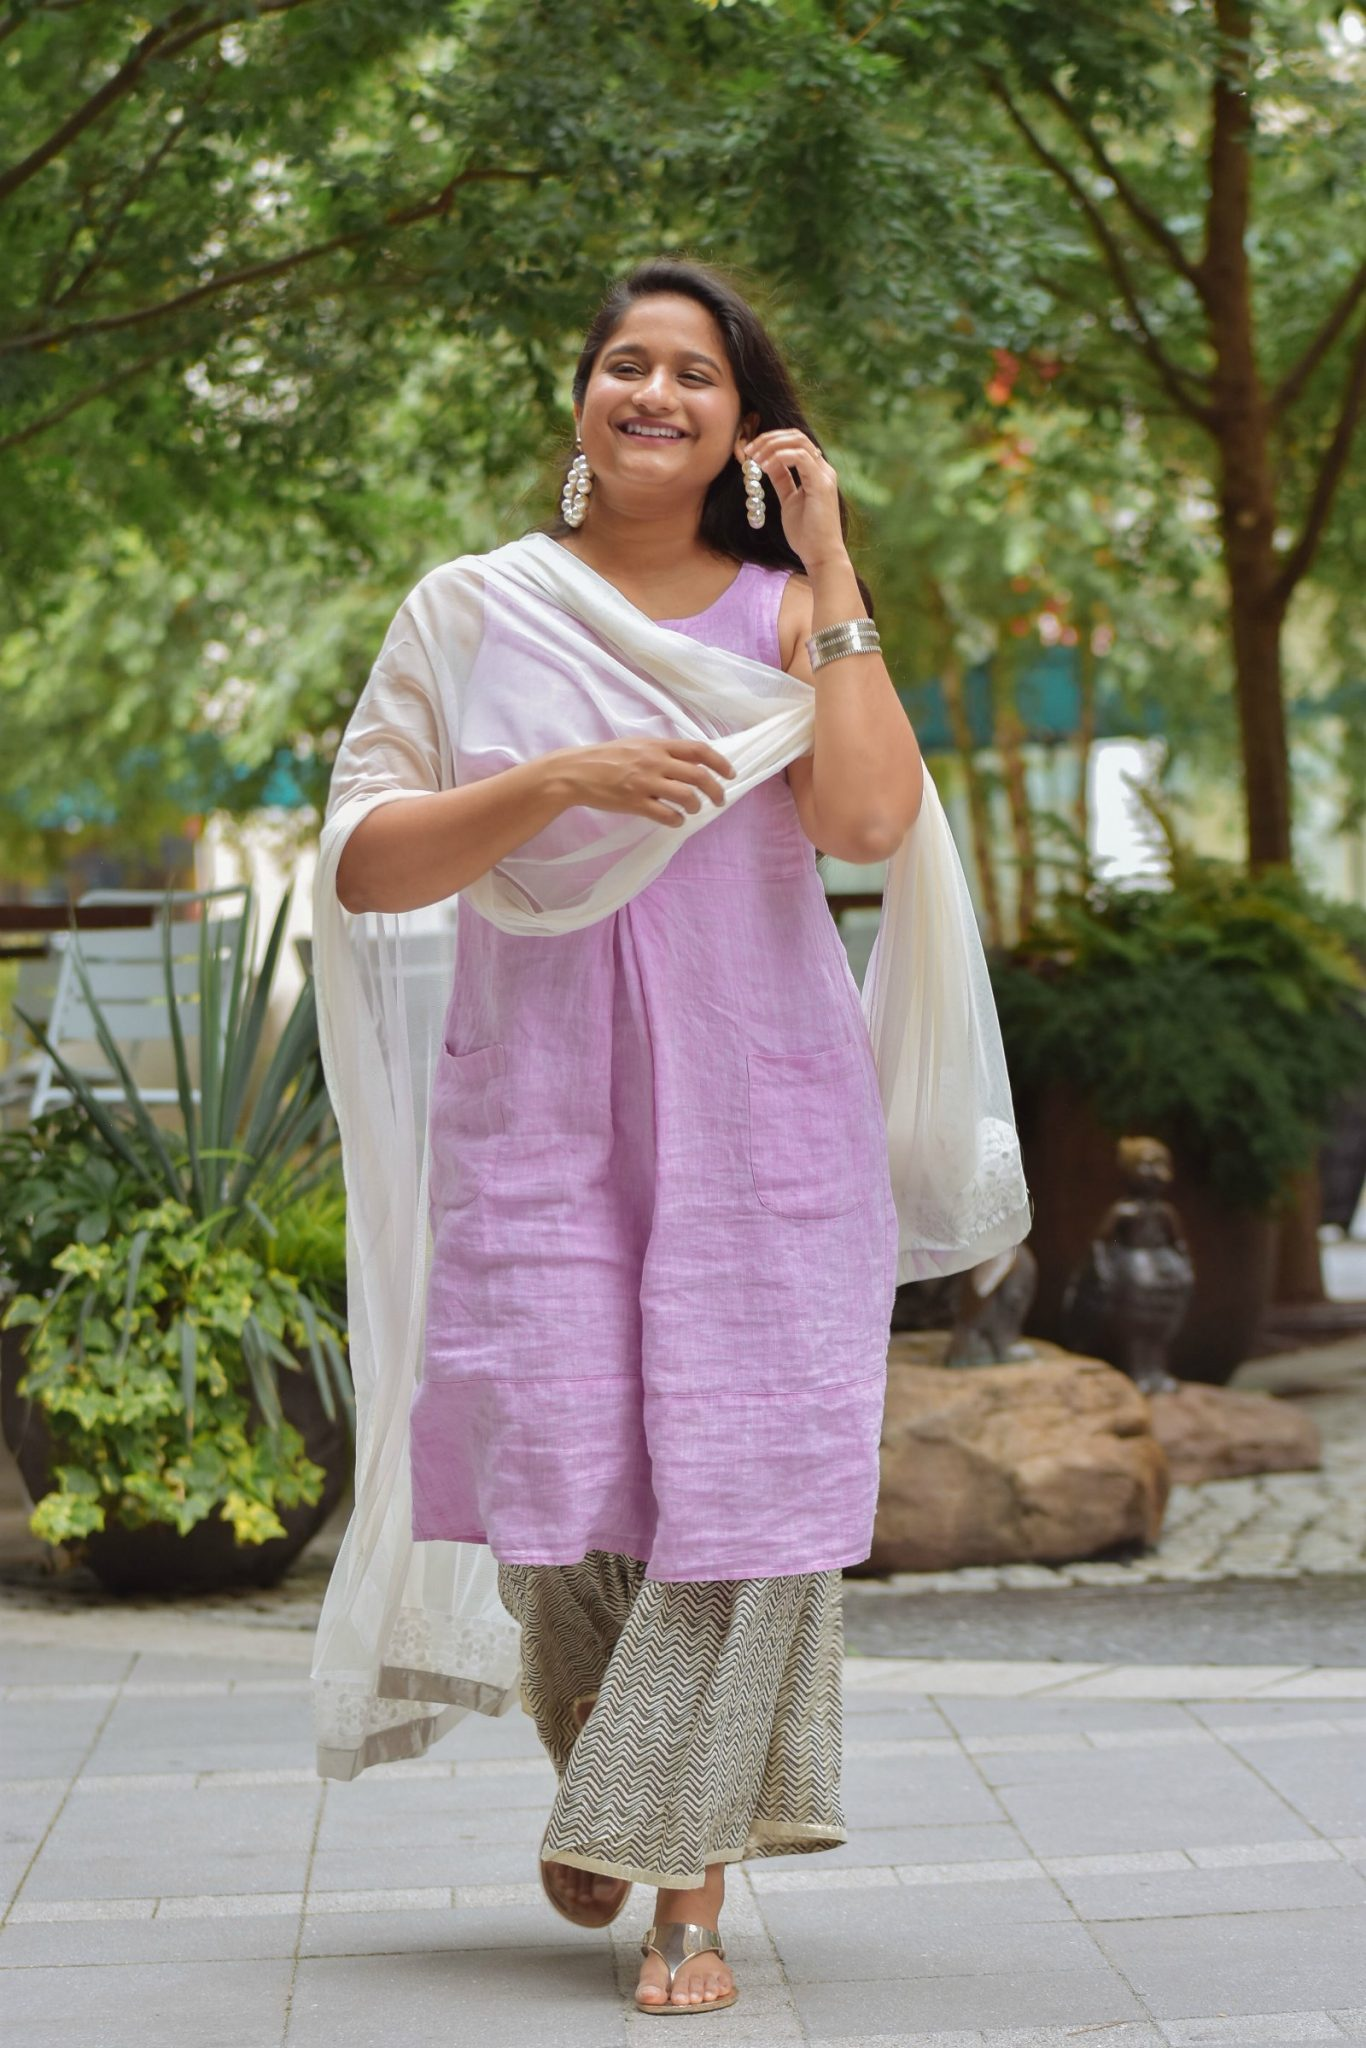 Wearing J.Jill Pleated Knit A-Line Dress, Wide leg pant, Pearl large hoops, White dupatta 6 | Indo Western by popular Maryland modest fashion blog, Dreaming Loud: image of a woman wearing an Indo Wester outfit with a purple linen dress, culottes, sliver sandals, pearl hoop earrings, and a silk dupatta.